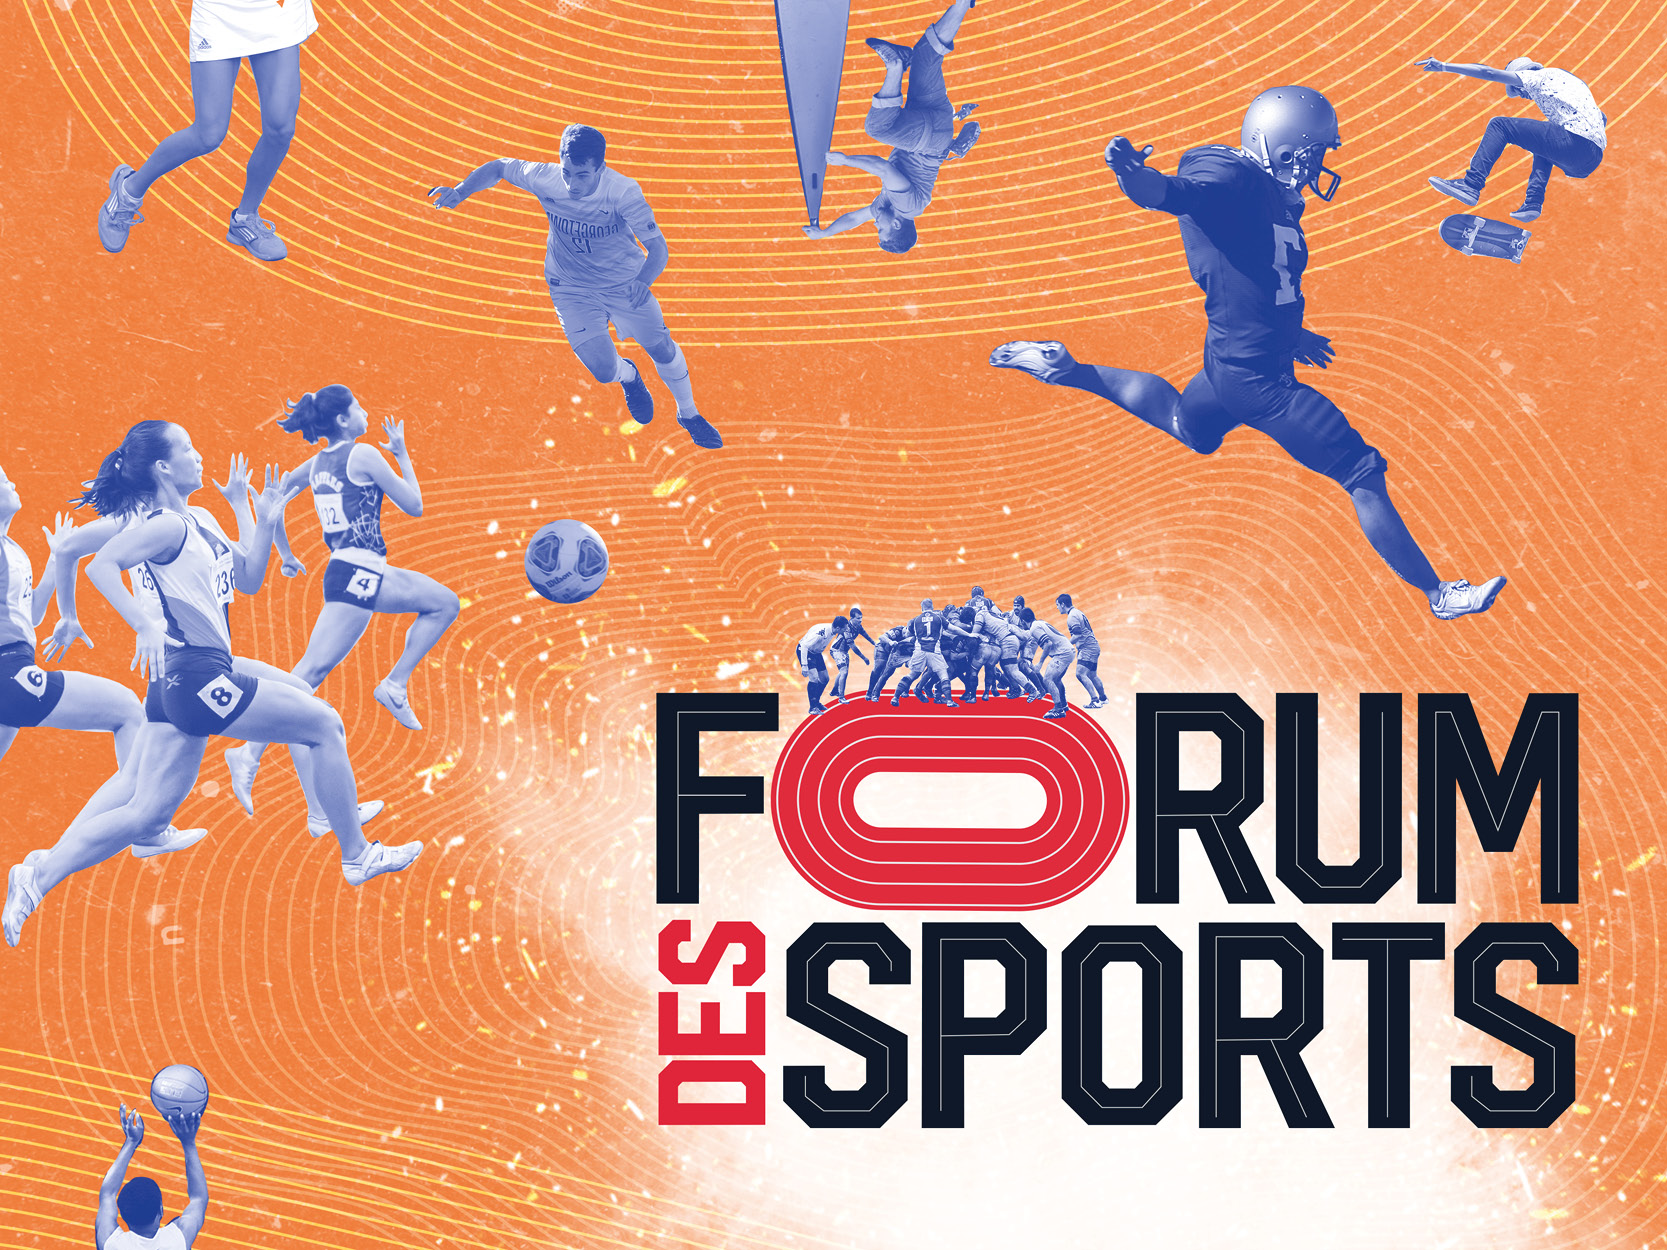 2019_7_doc - FORUM SPORT - 8 SEPT 20192